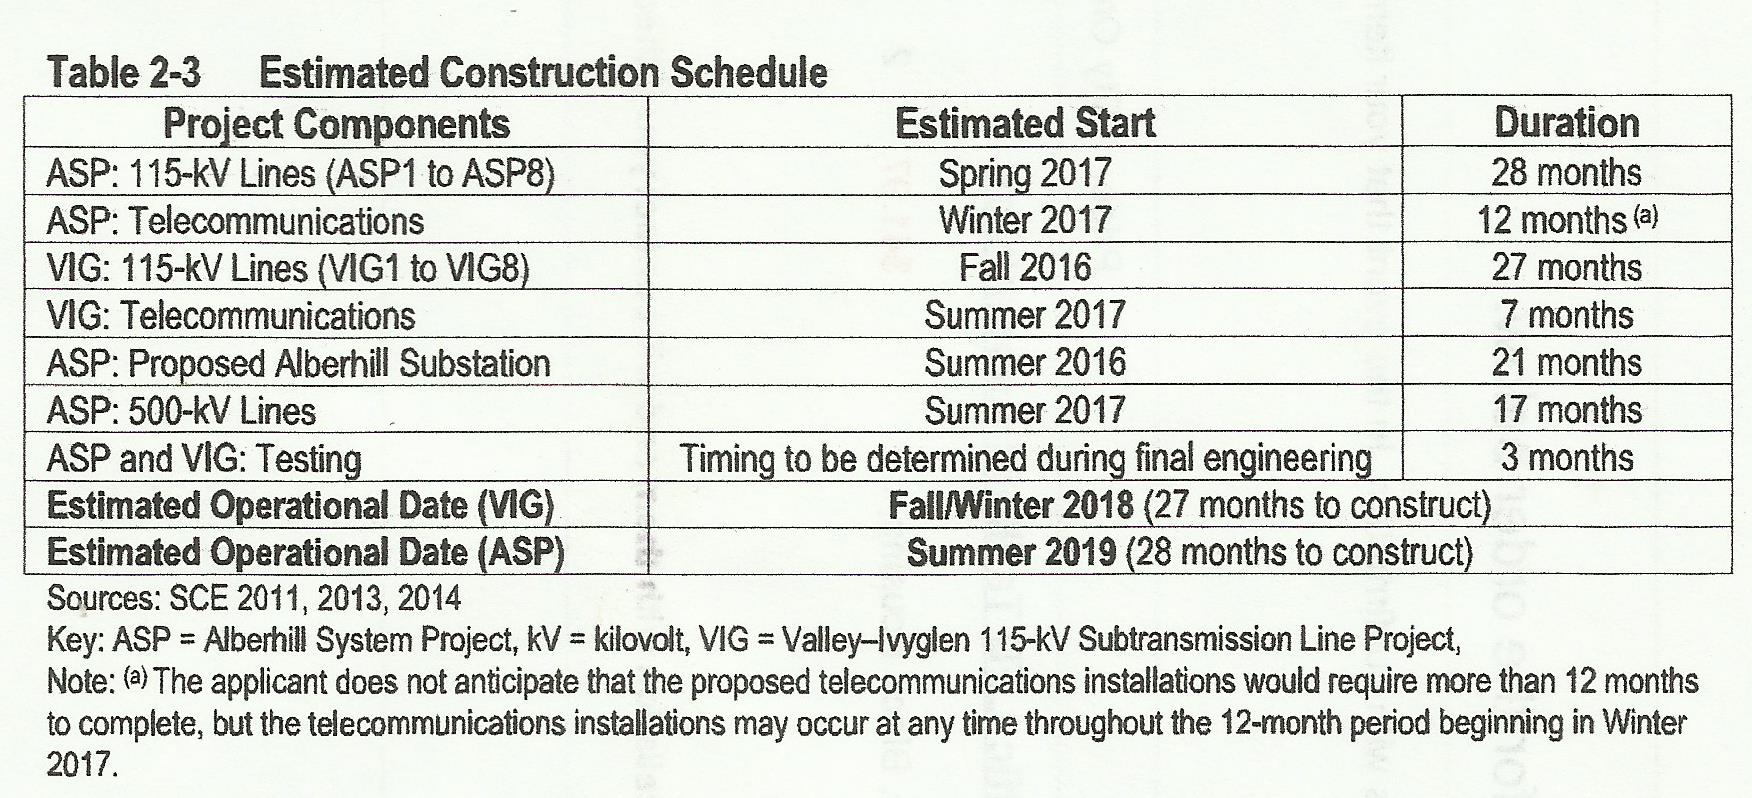 Work Schedule assuming approval by CPUC.